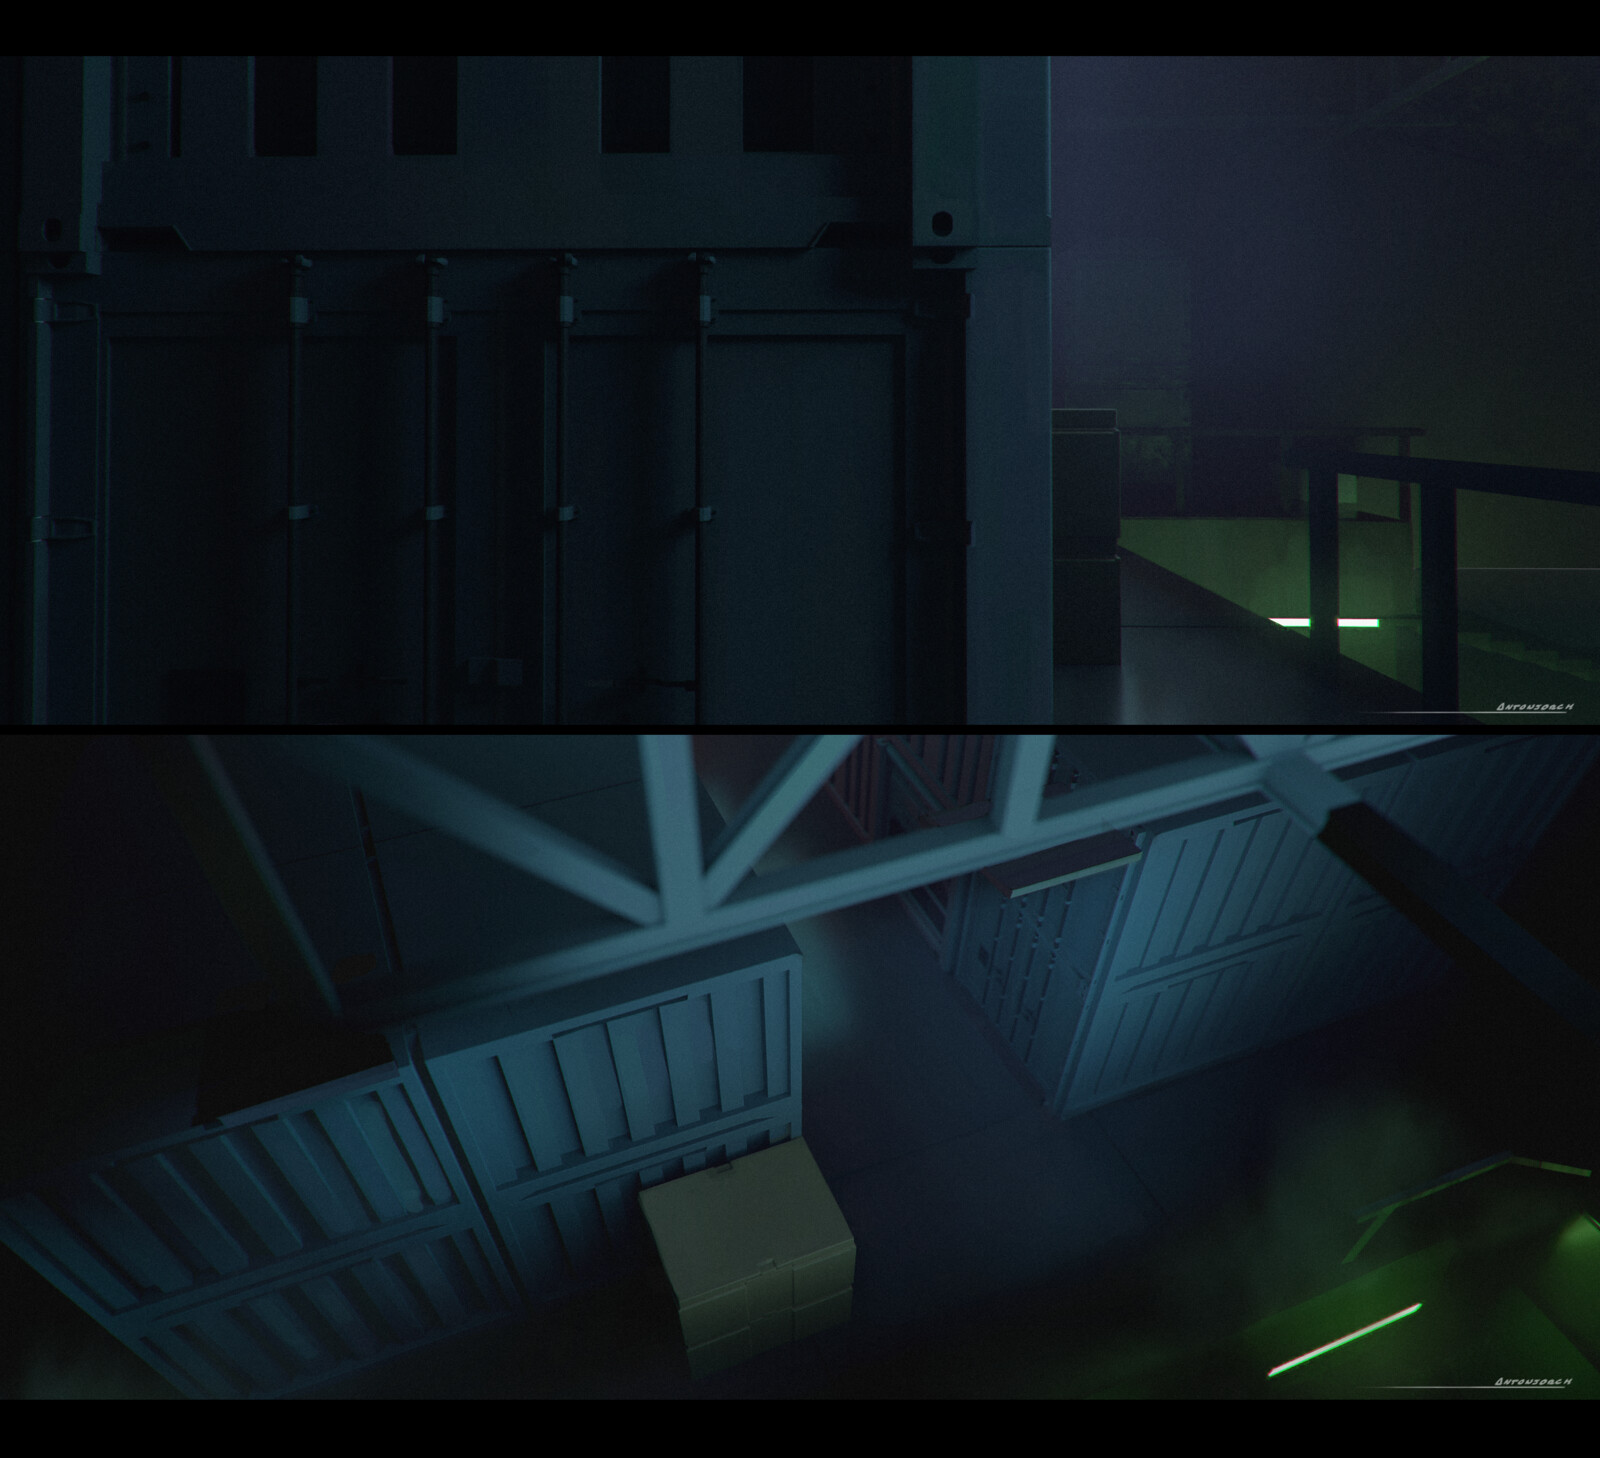 MGS Animated Project part 1